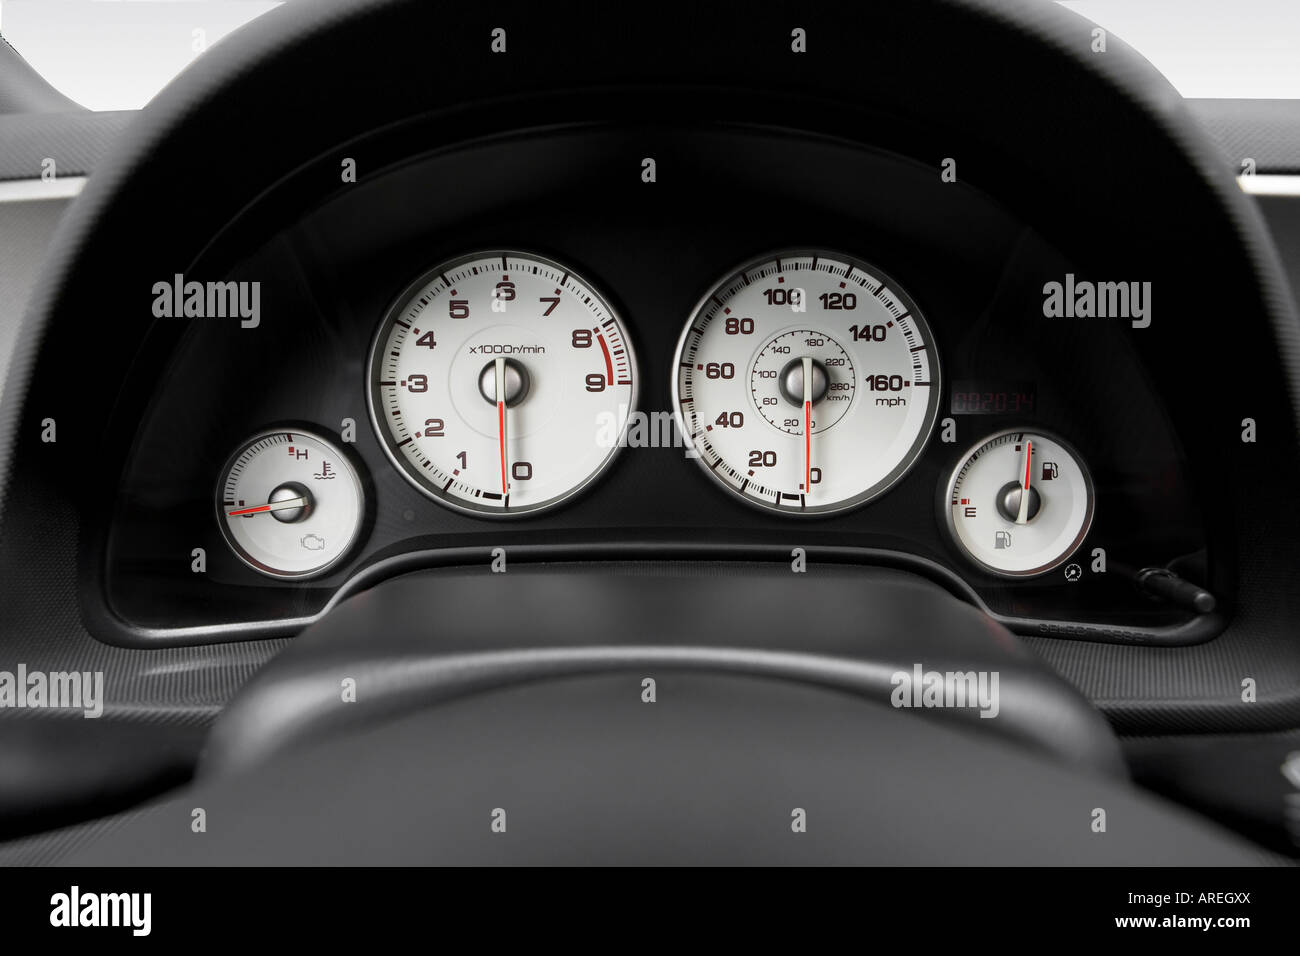 2006 Acura RSX Type-S in Silver - Speedometer/tachometer Stock Photo